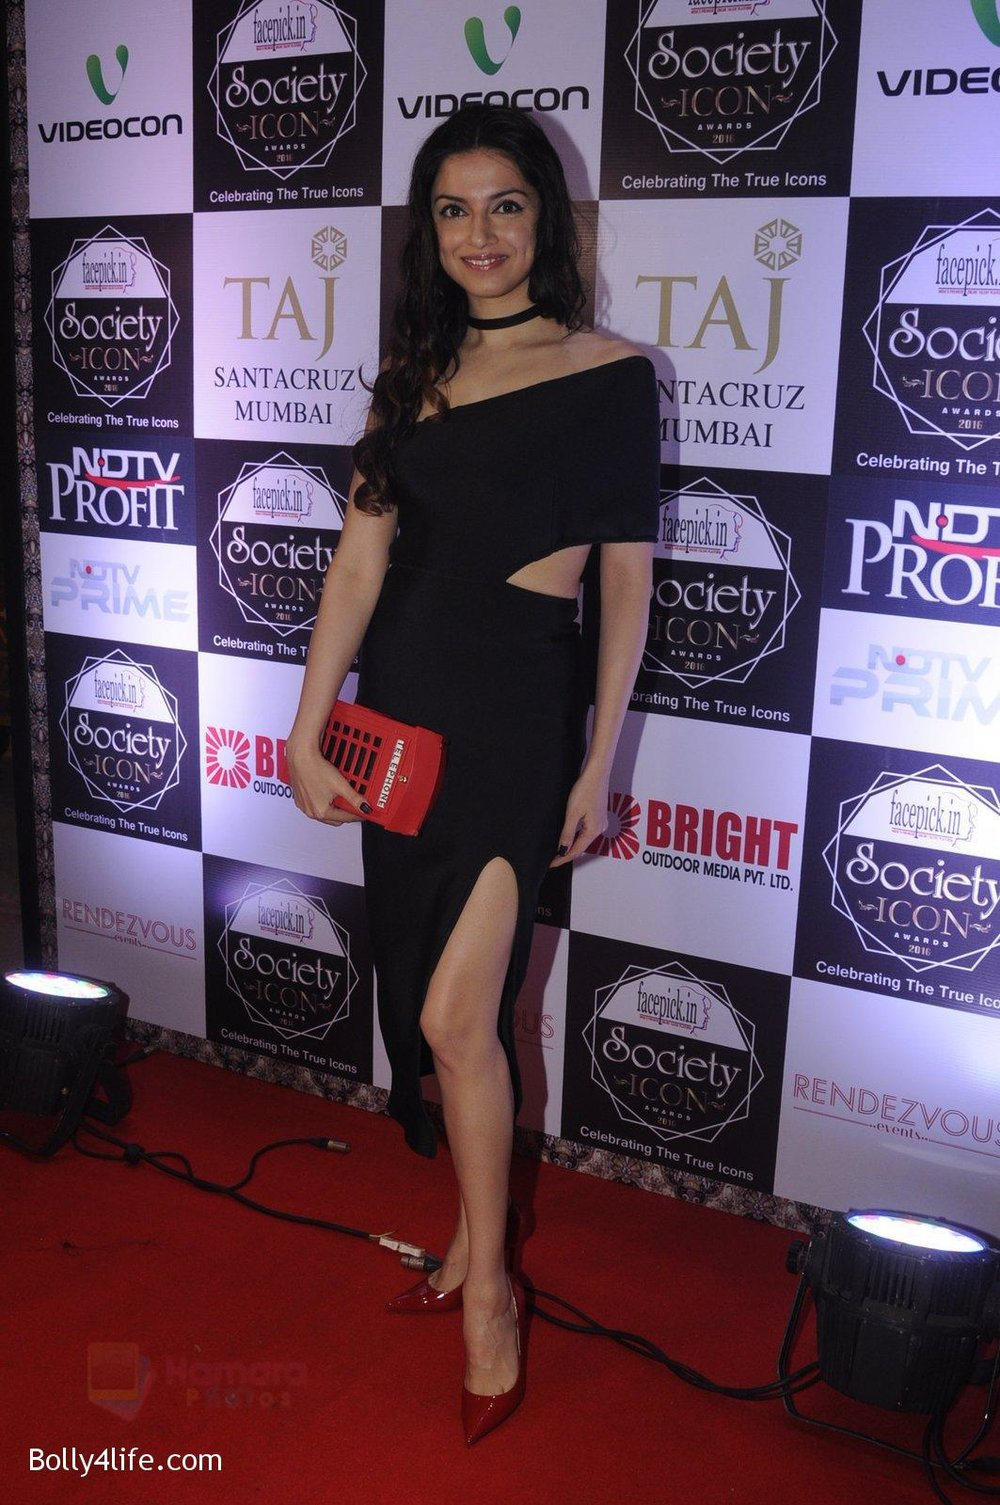 Divya-Kumar-at-Society-Icon-Awards-on-2nd-Oct-2016-53.jpg